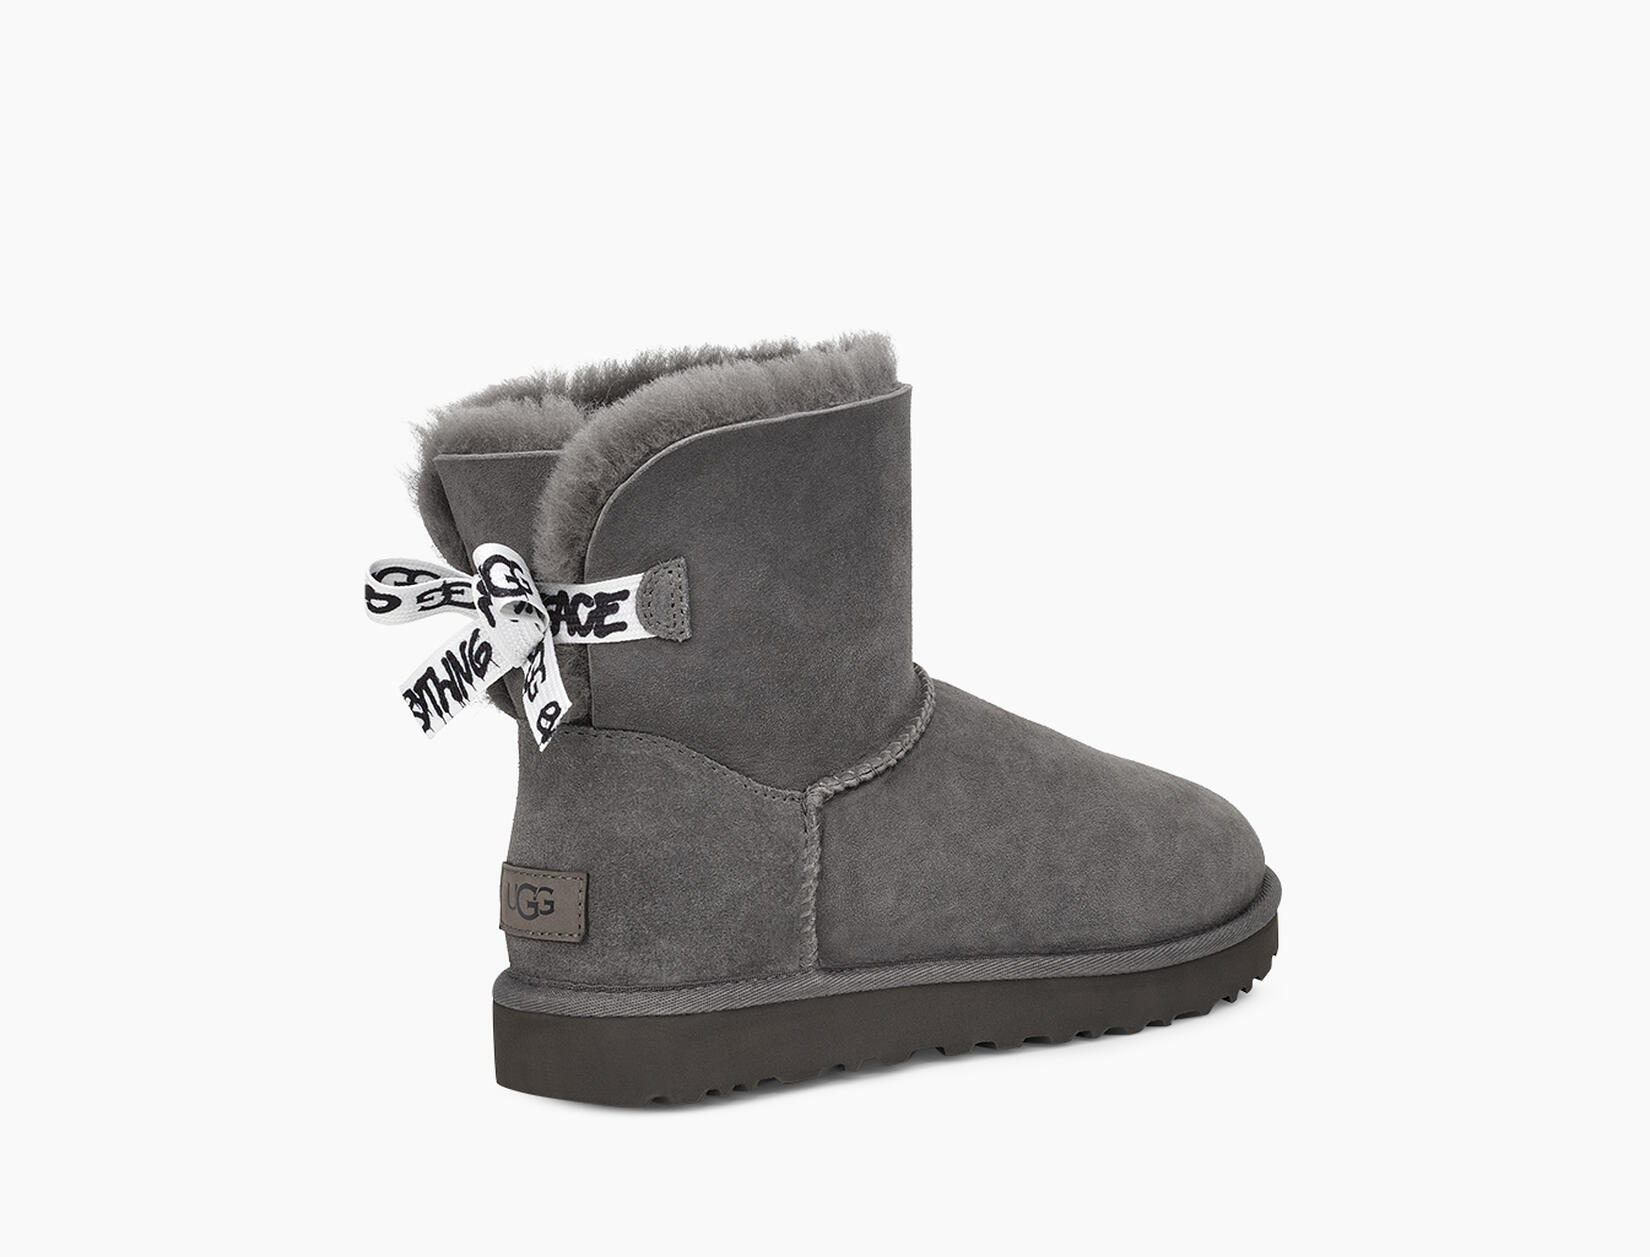 Mini Bailey Bow II Graffiti Boot